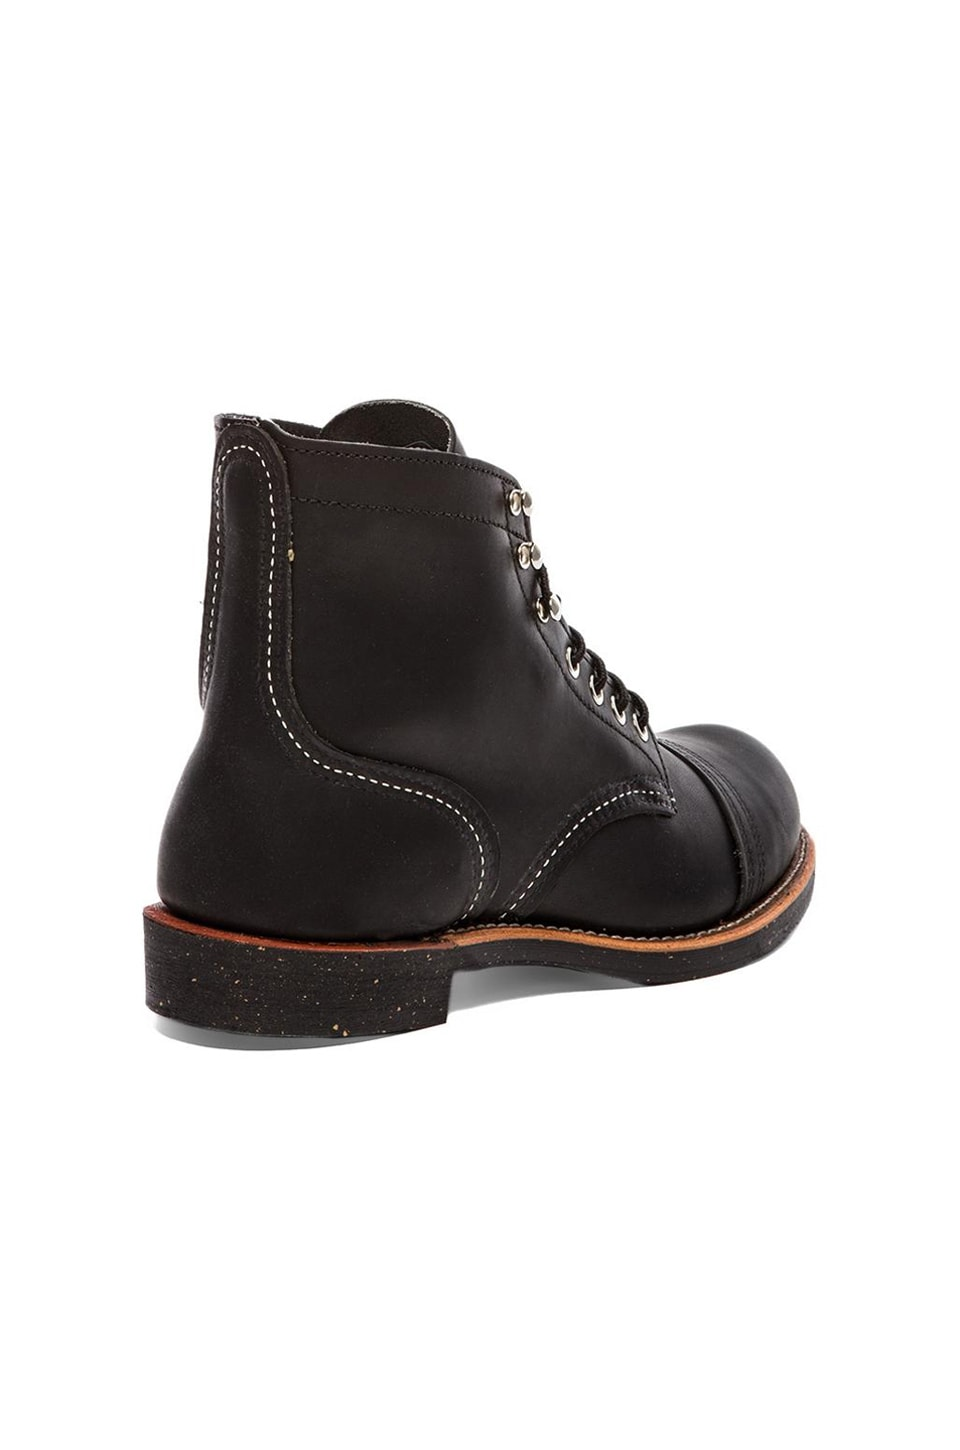 "Red Wing Shoes Iron Ranger 6"" Iron Ranger in Black Harness"